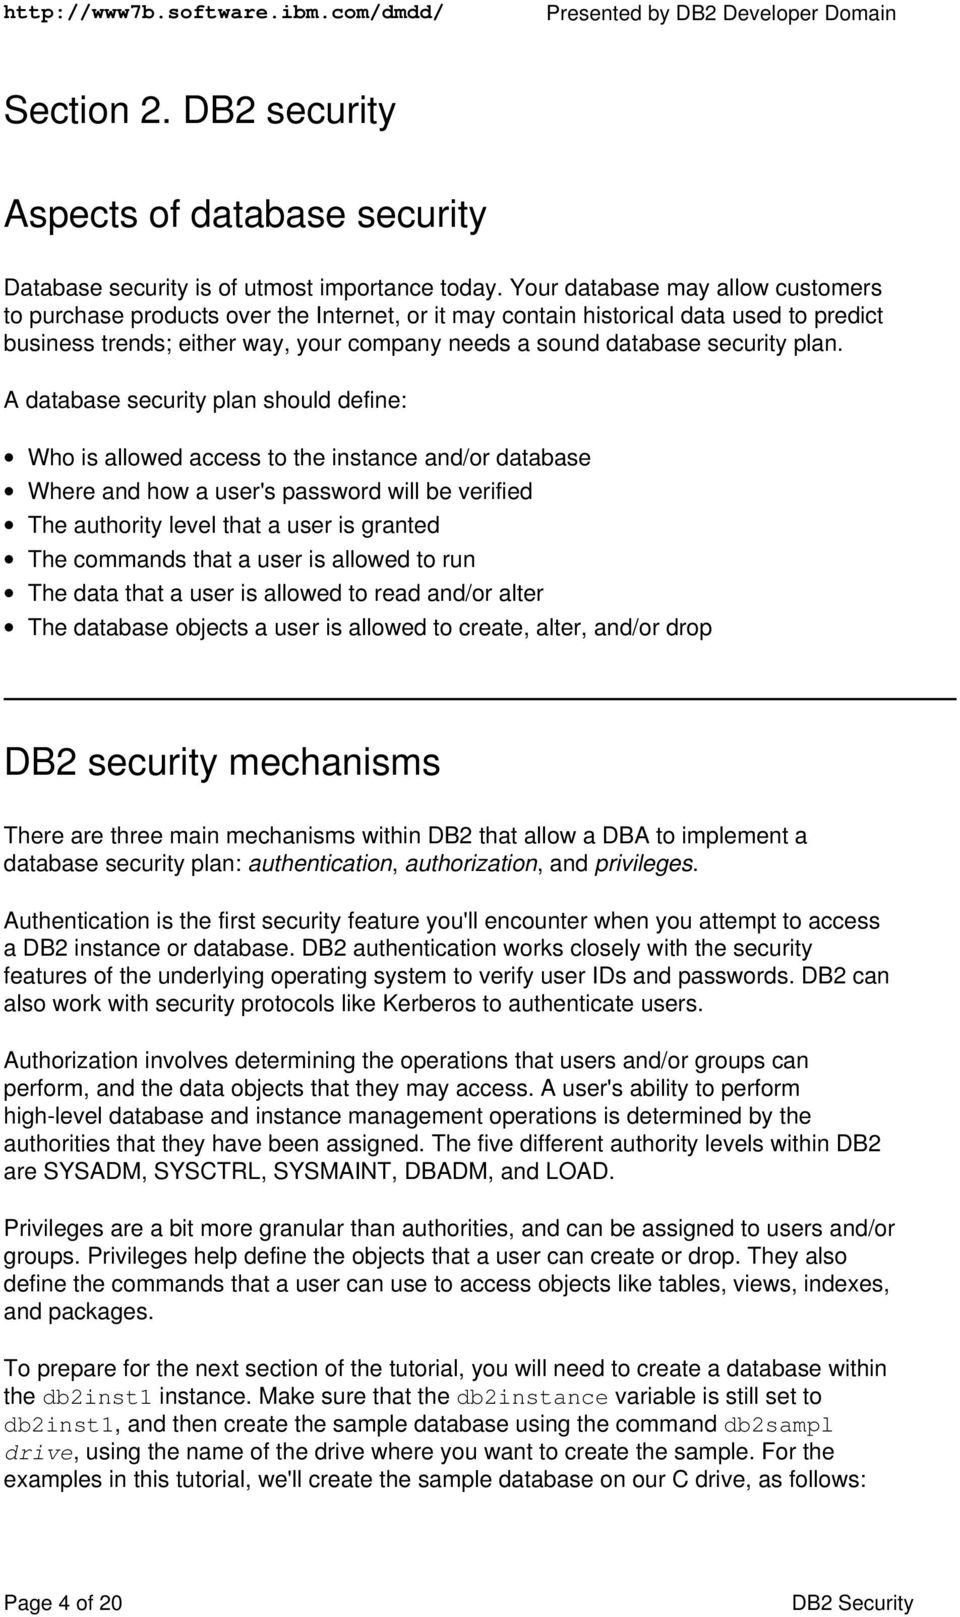 plan. A database security plan should define: Who is allowed access to the instance and/or database Where and how a user's password will be verified The authority level that a user is granted The